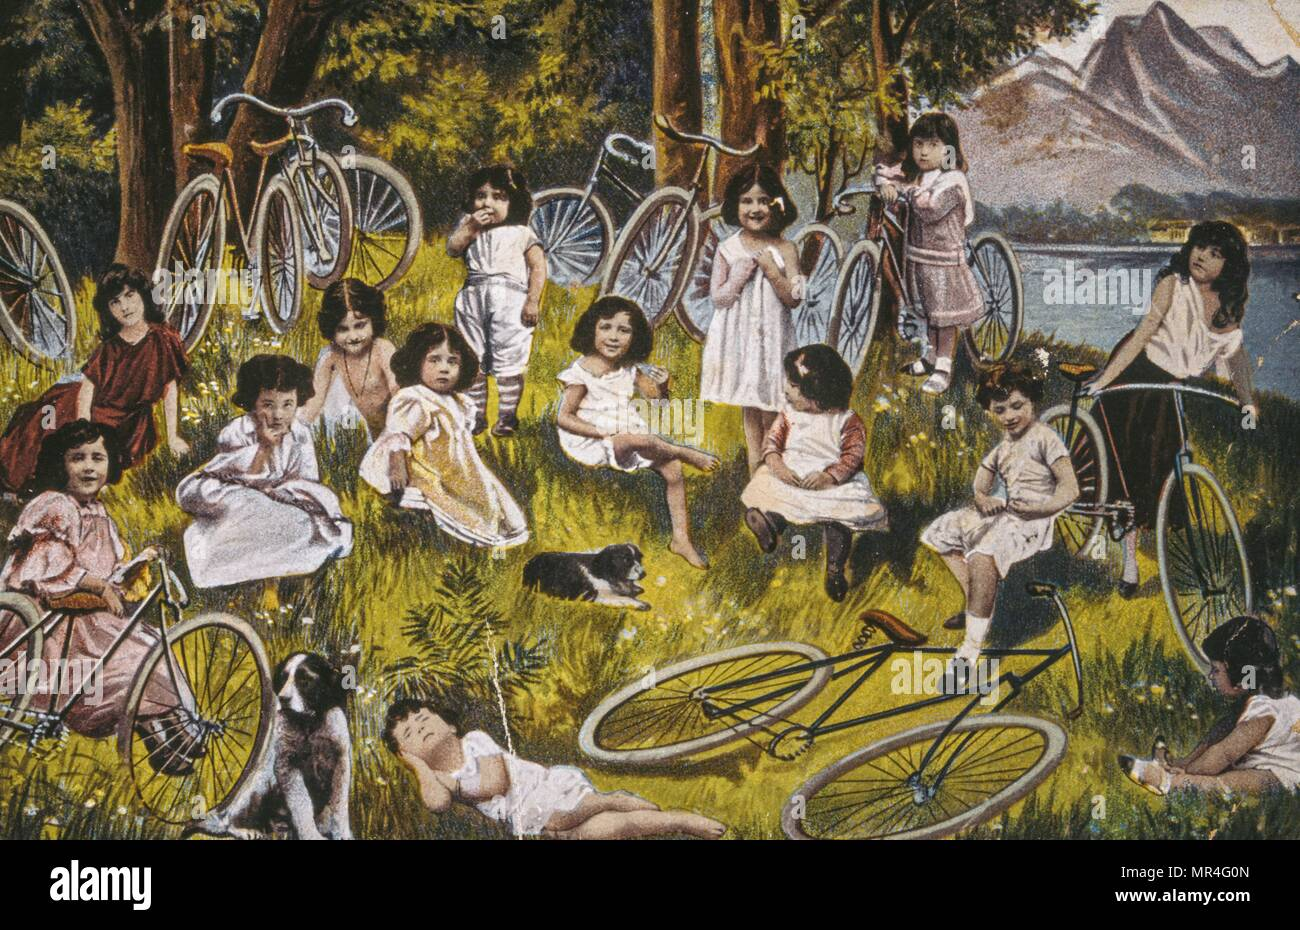 French postcard showing young girls in the countryside with their bicycles 1900 - Stock Image